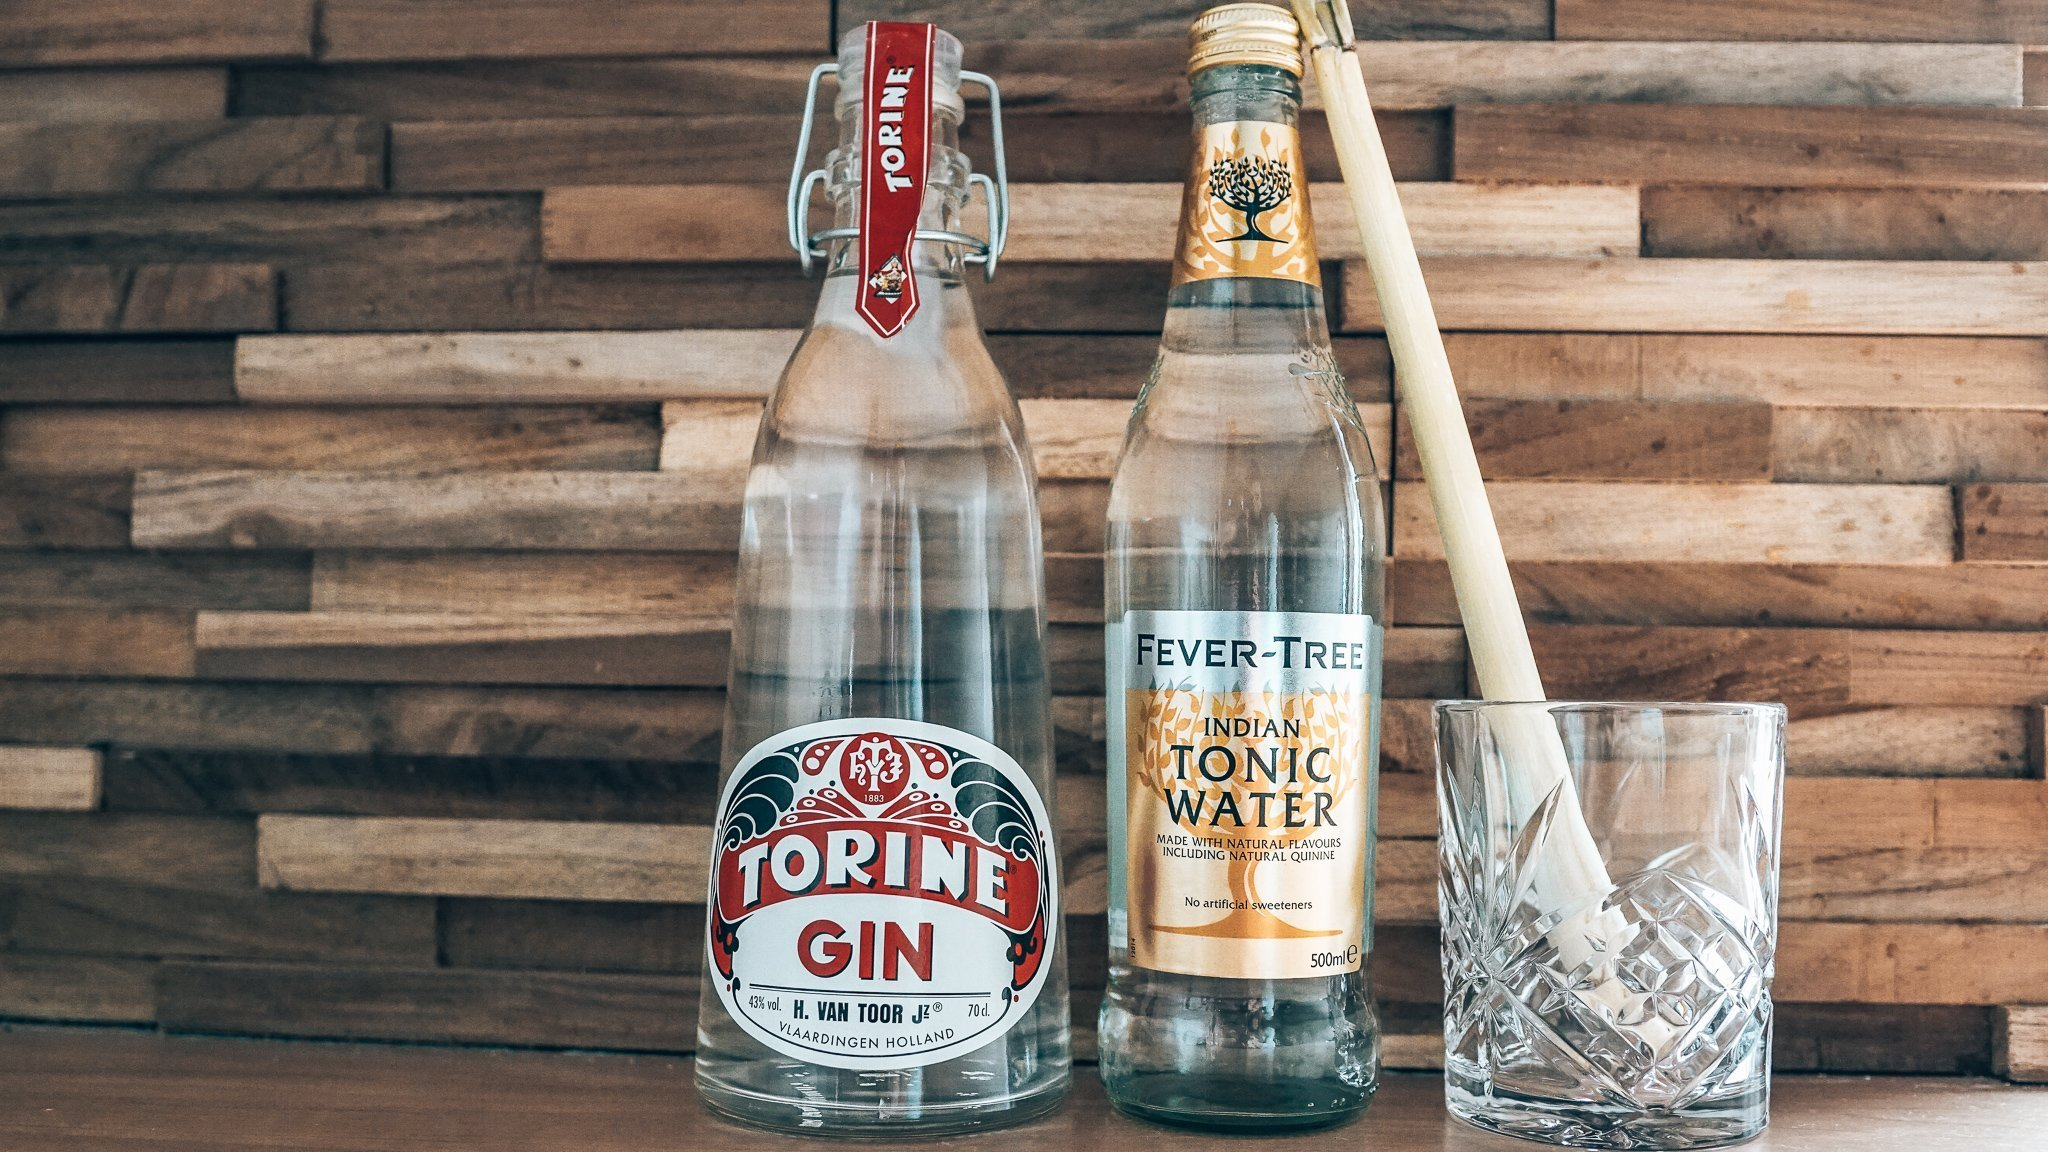 Torine Gin en Fever-Tree Tonic, Alles over gin.